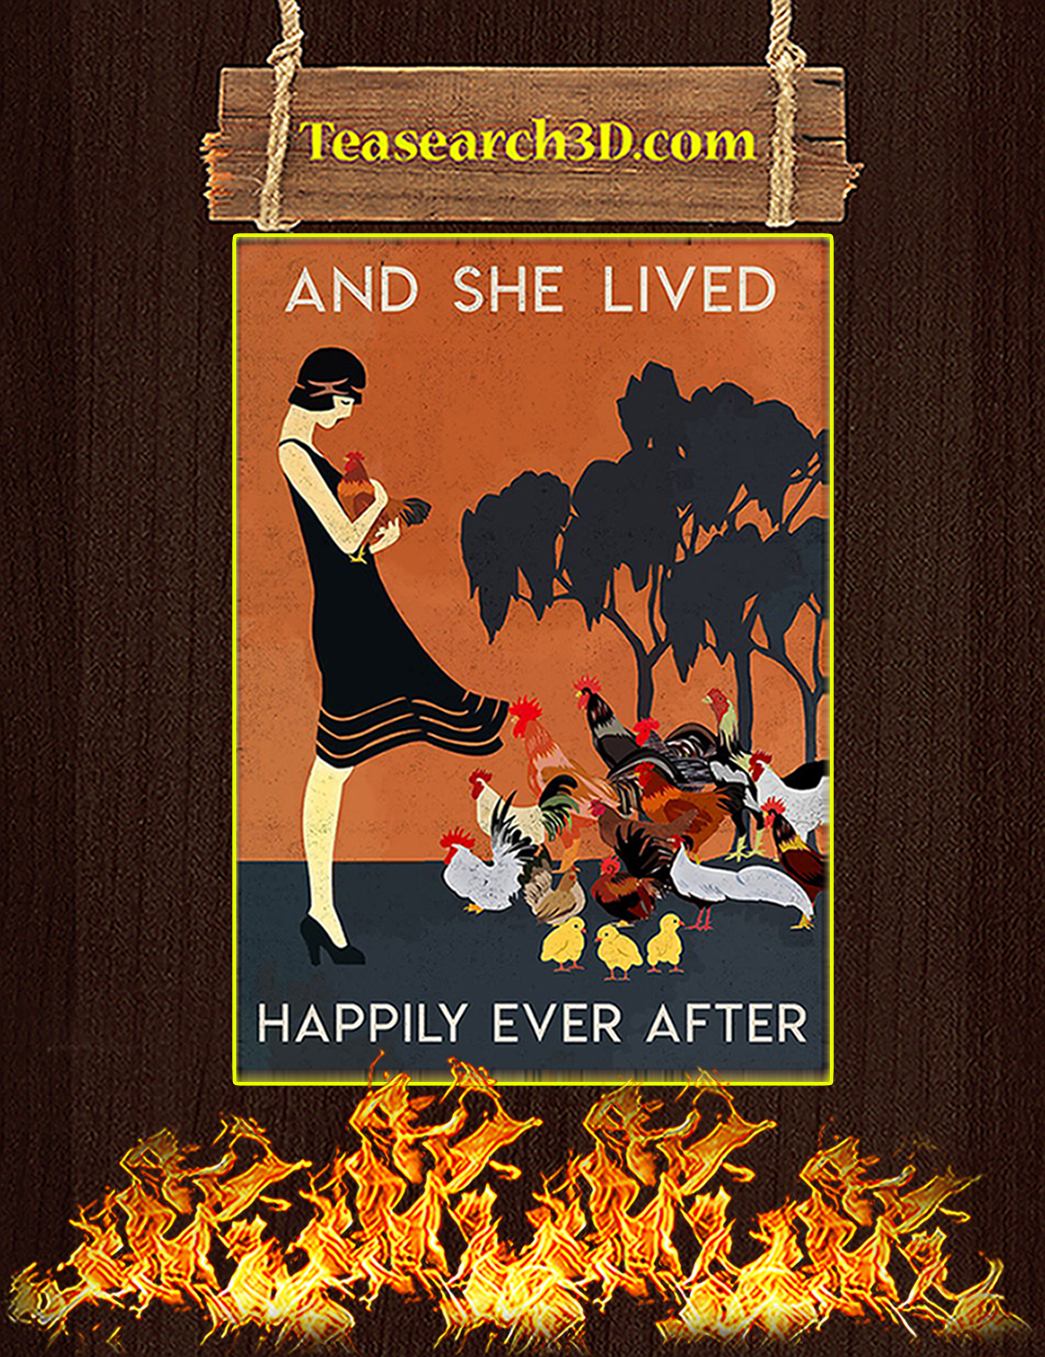 Chicken And she lived happily ever after poster A1